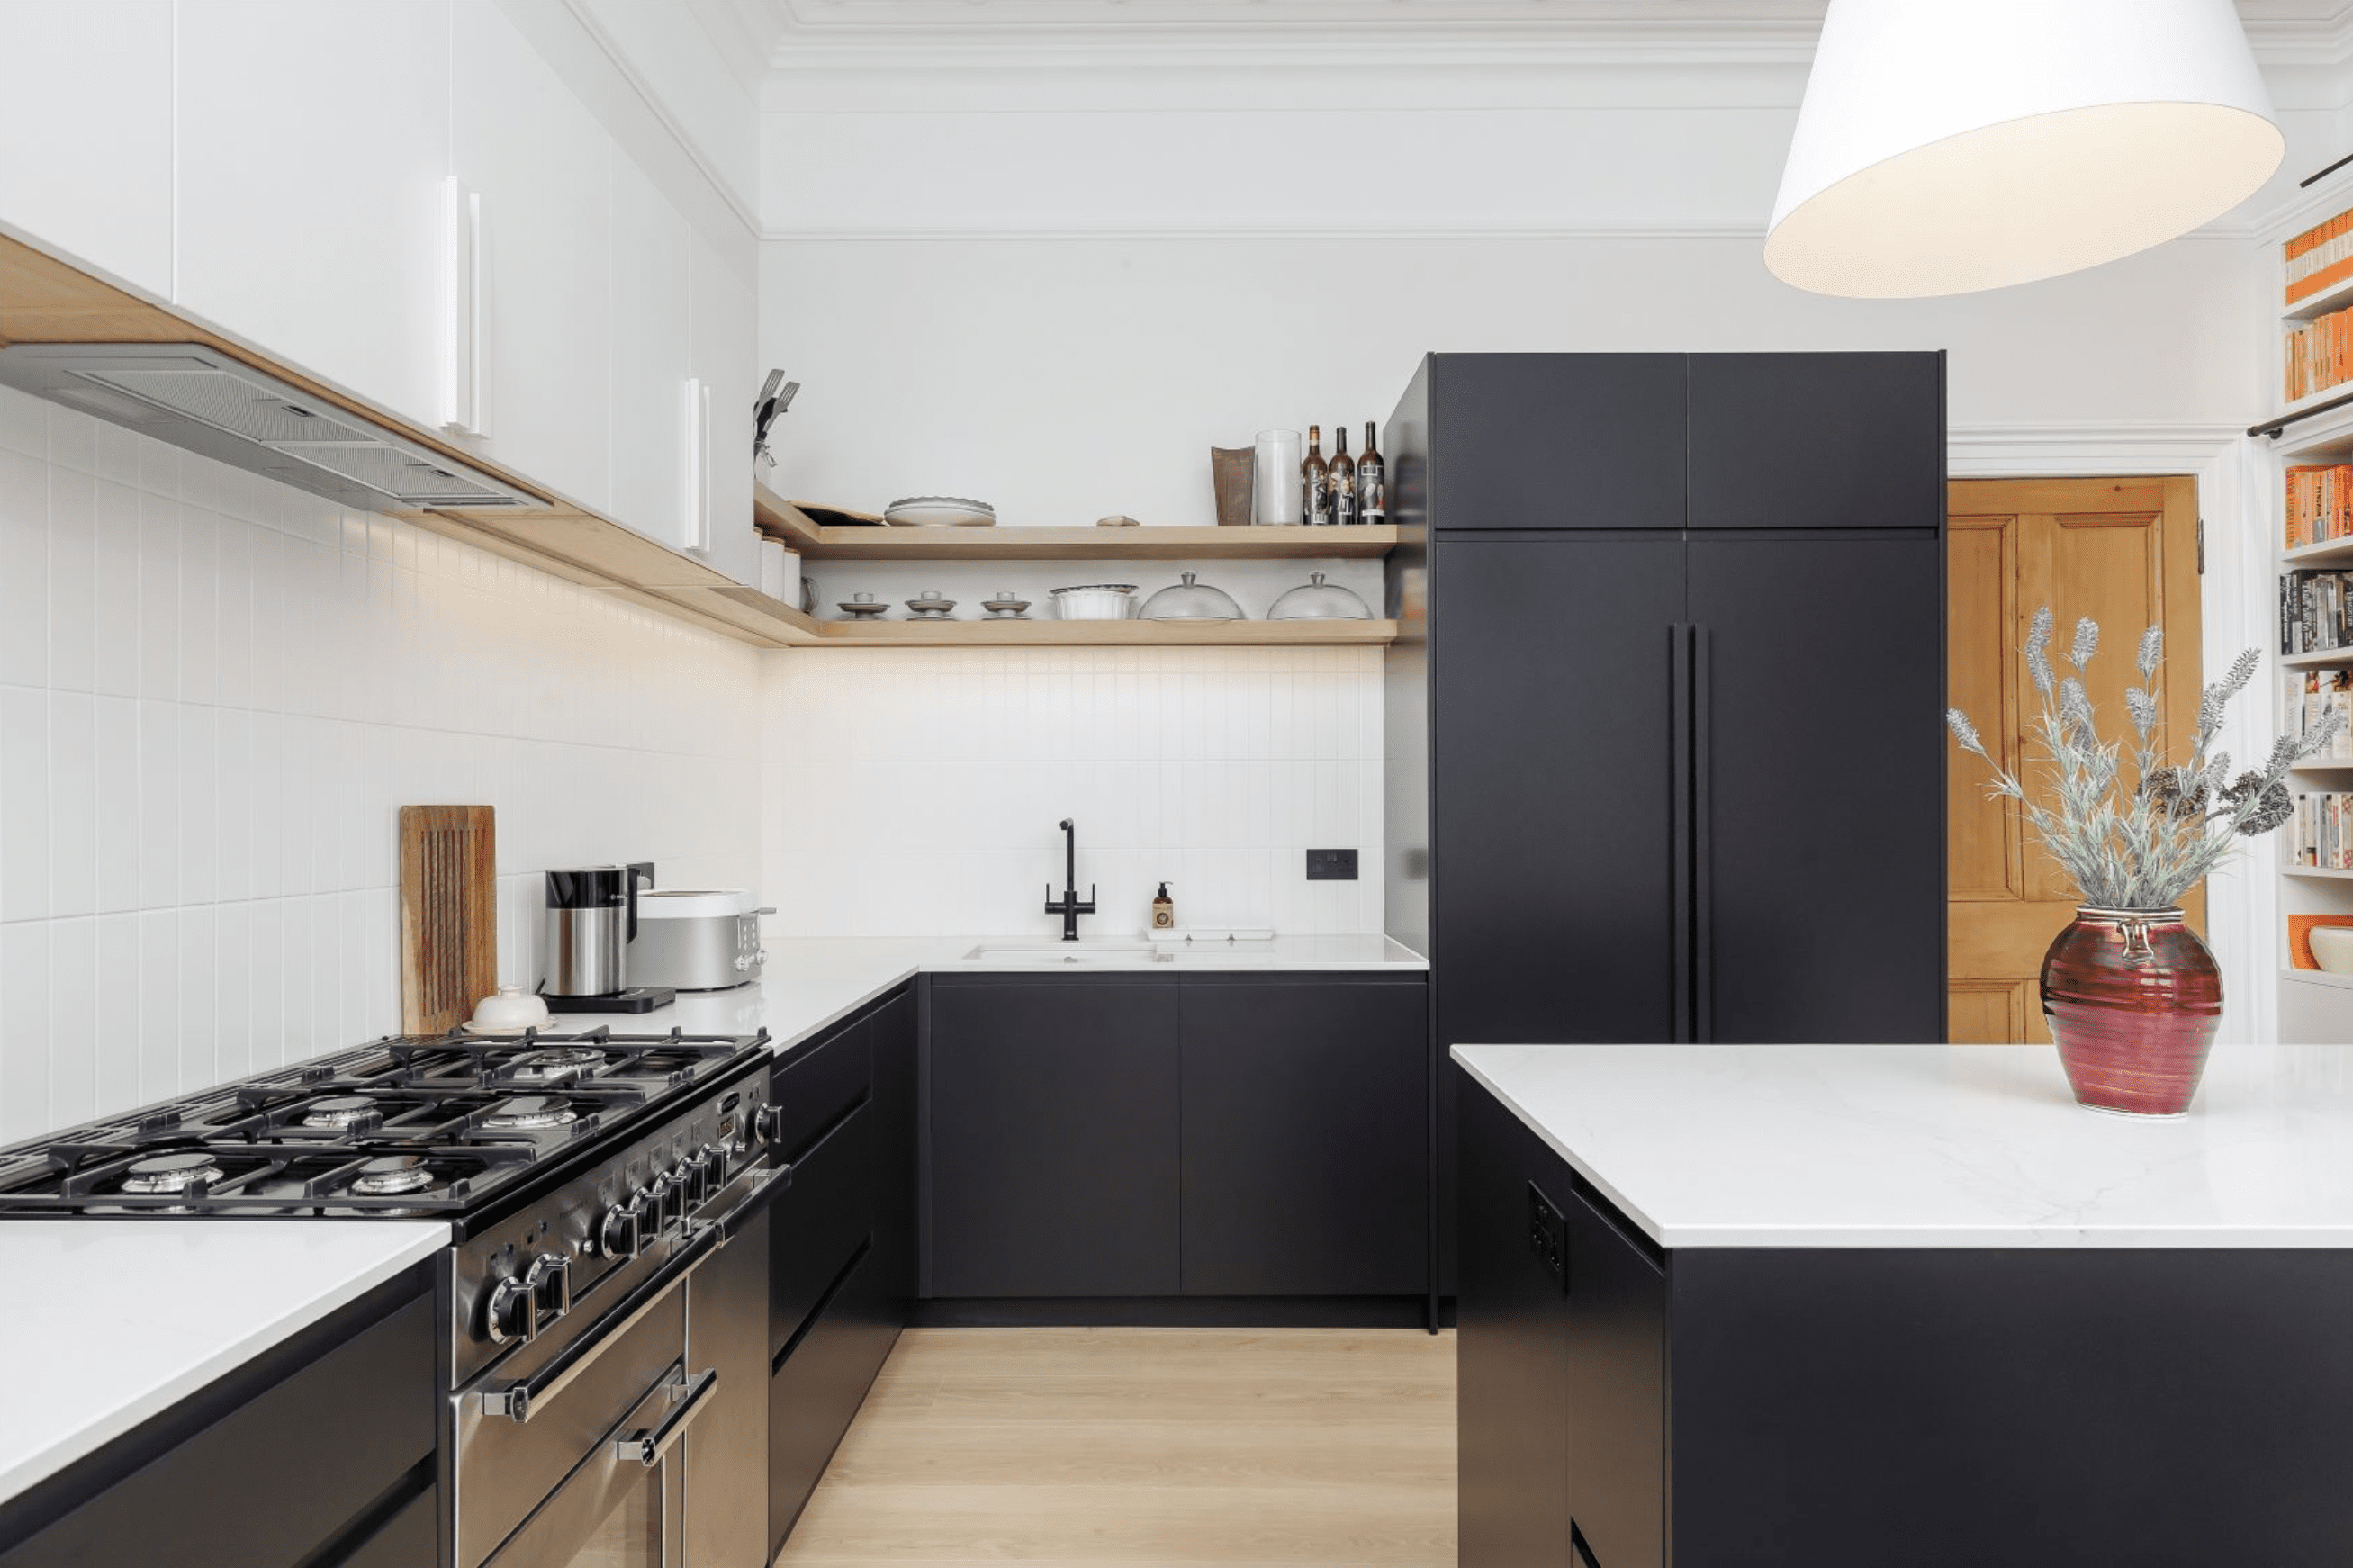 20 Modern Kitchen Ideas To Give Your Space New Life